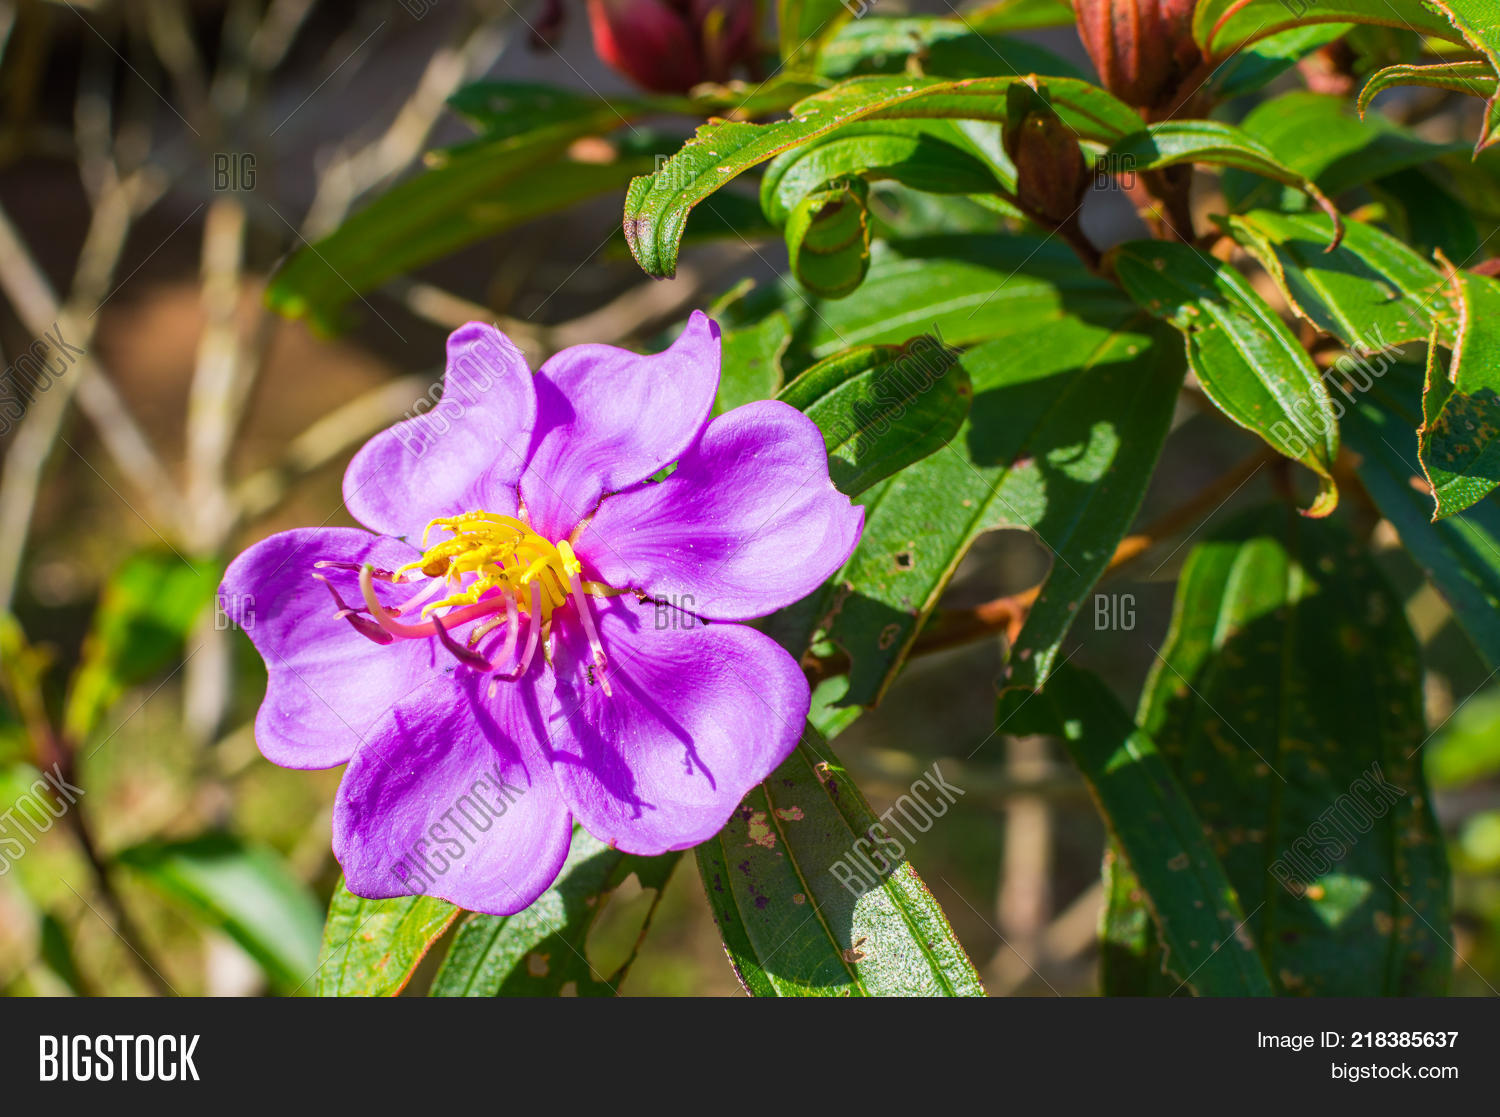 Purple flower yellow image photo free trial bigstock purple flower with yellow center in the garden mightylinksfo